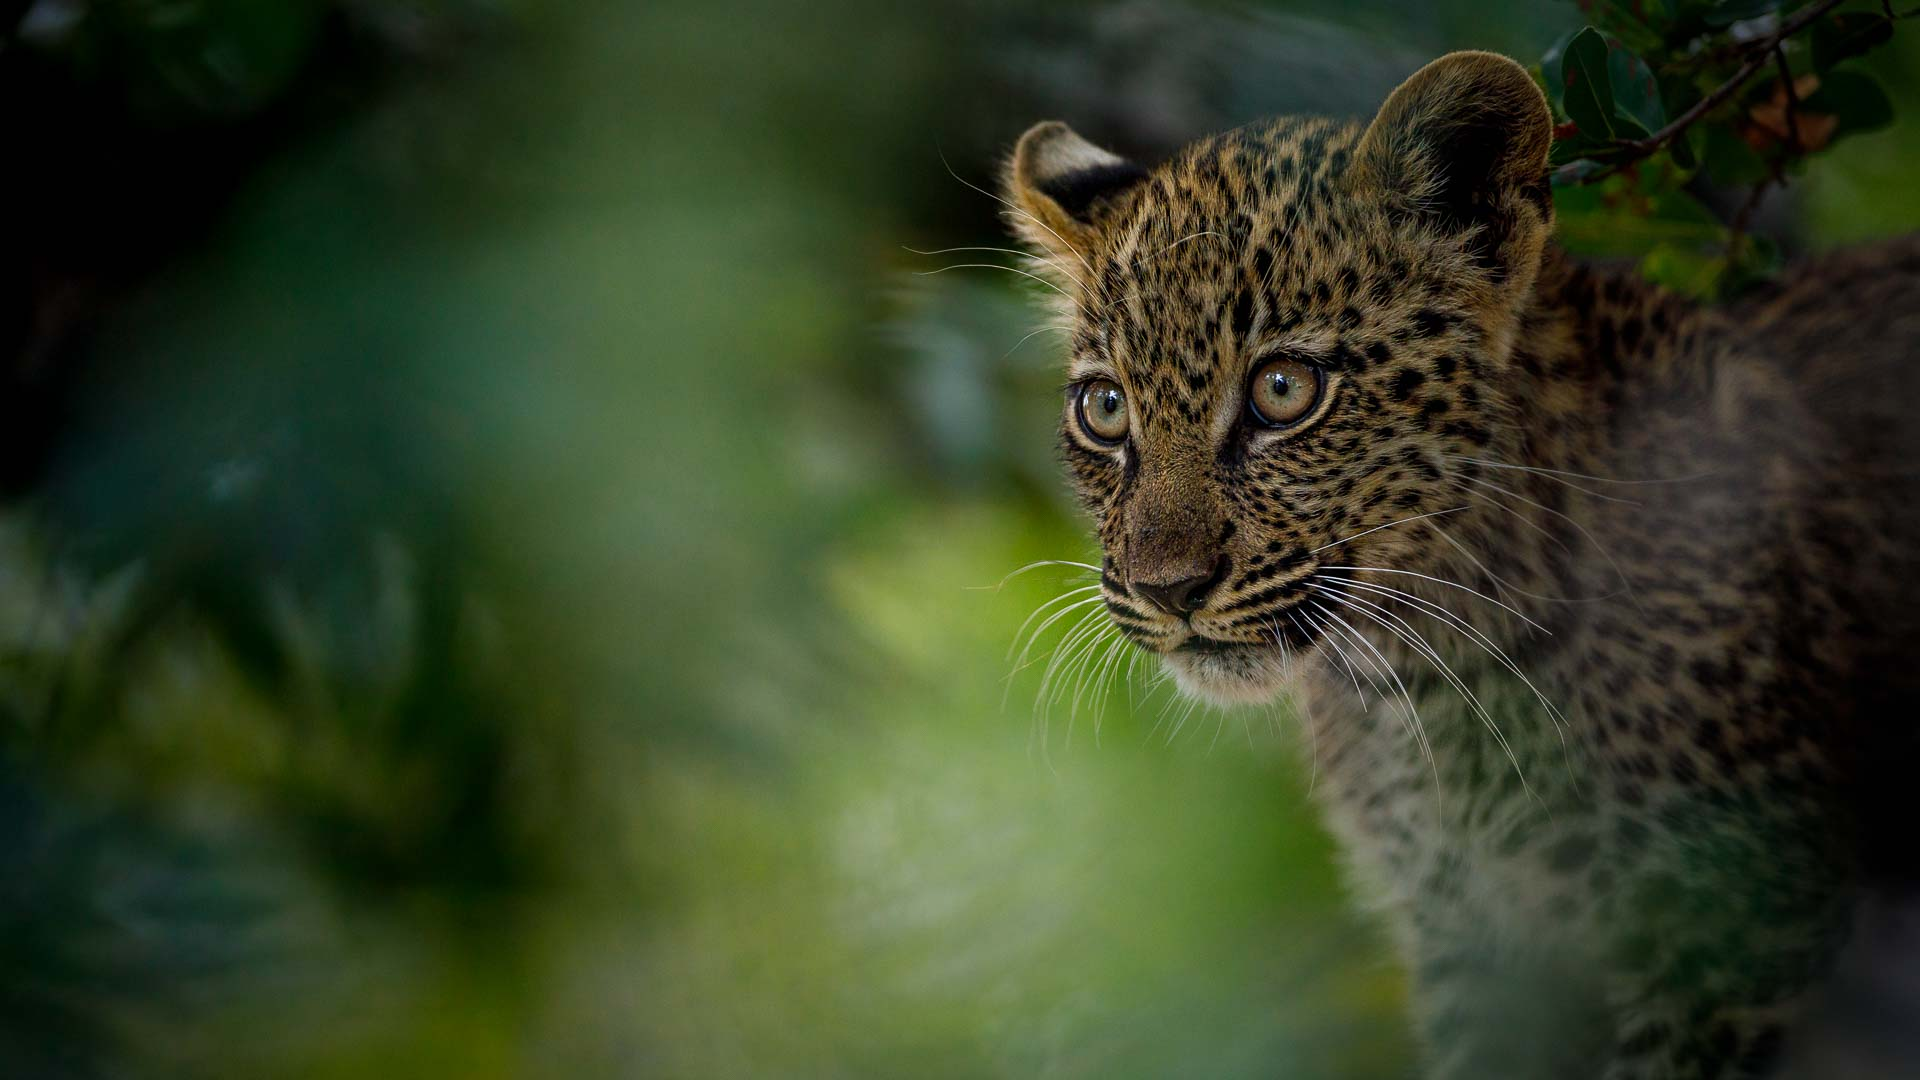 Tanda Tula - leopard on safari in the Greater Kruger, South Africa